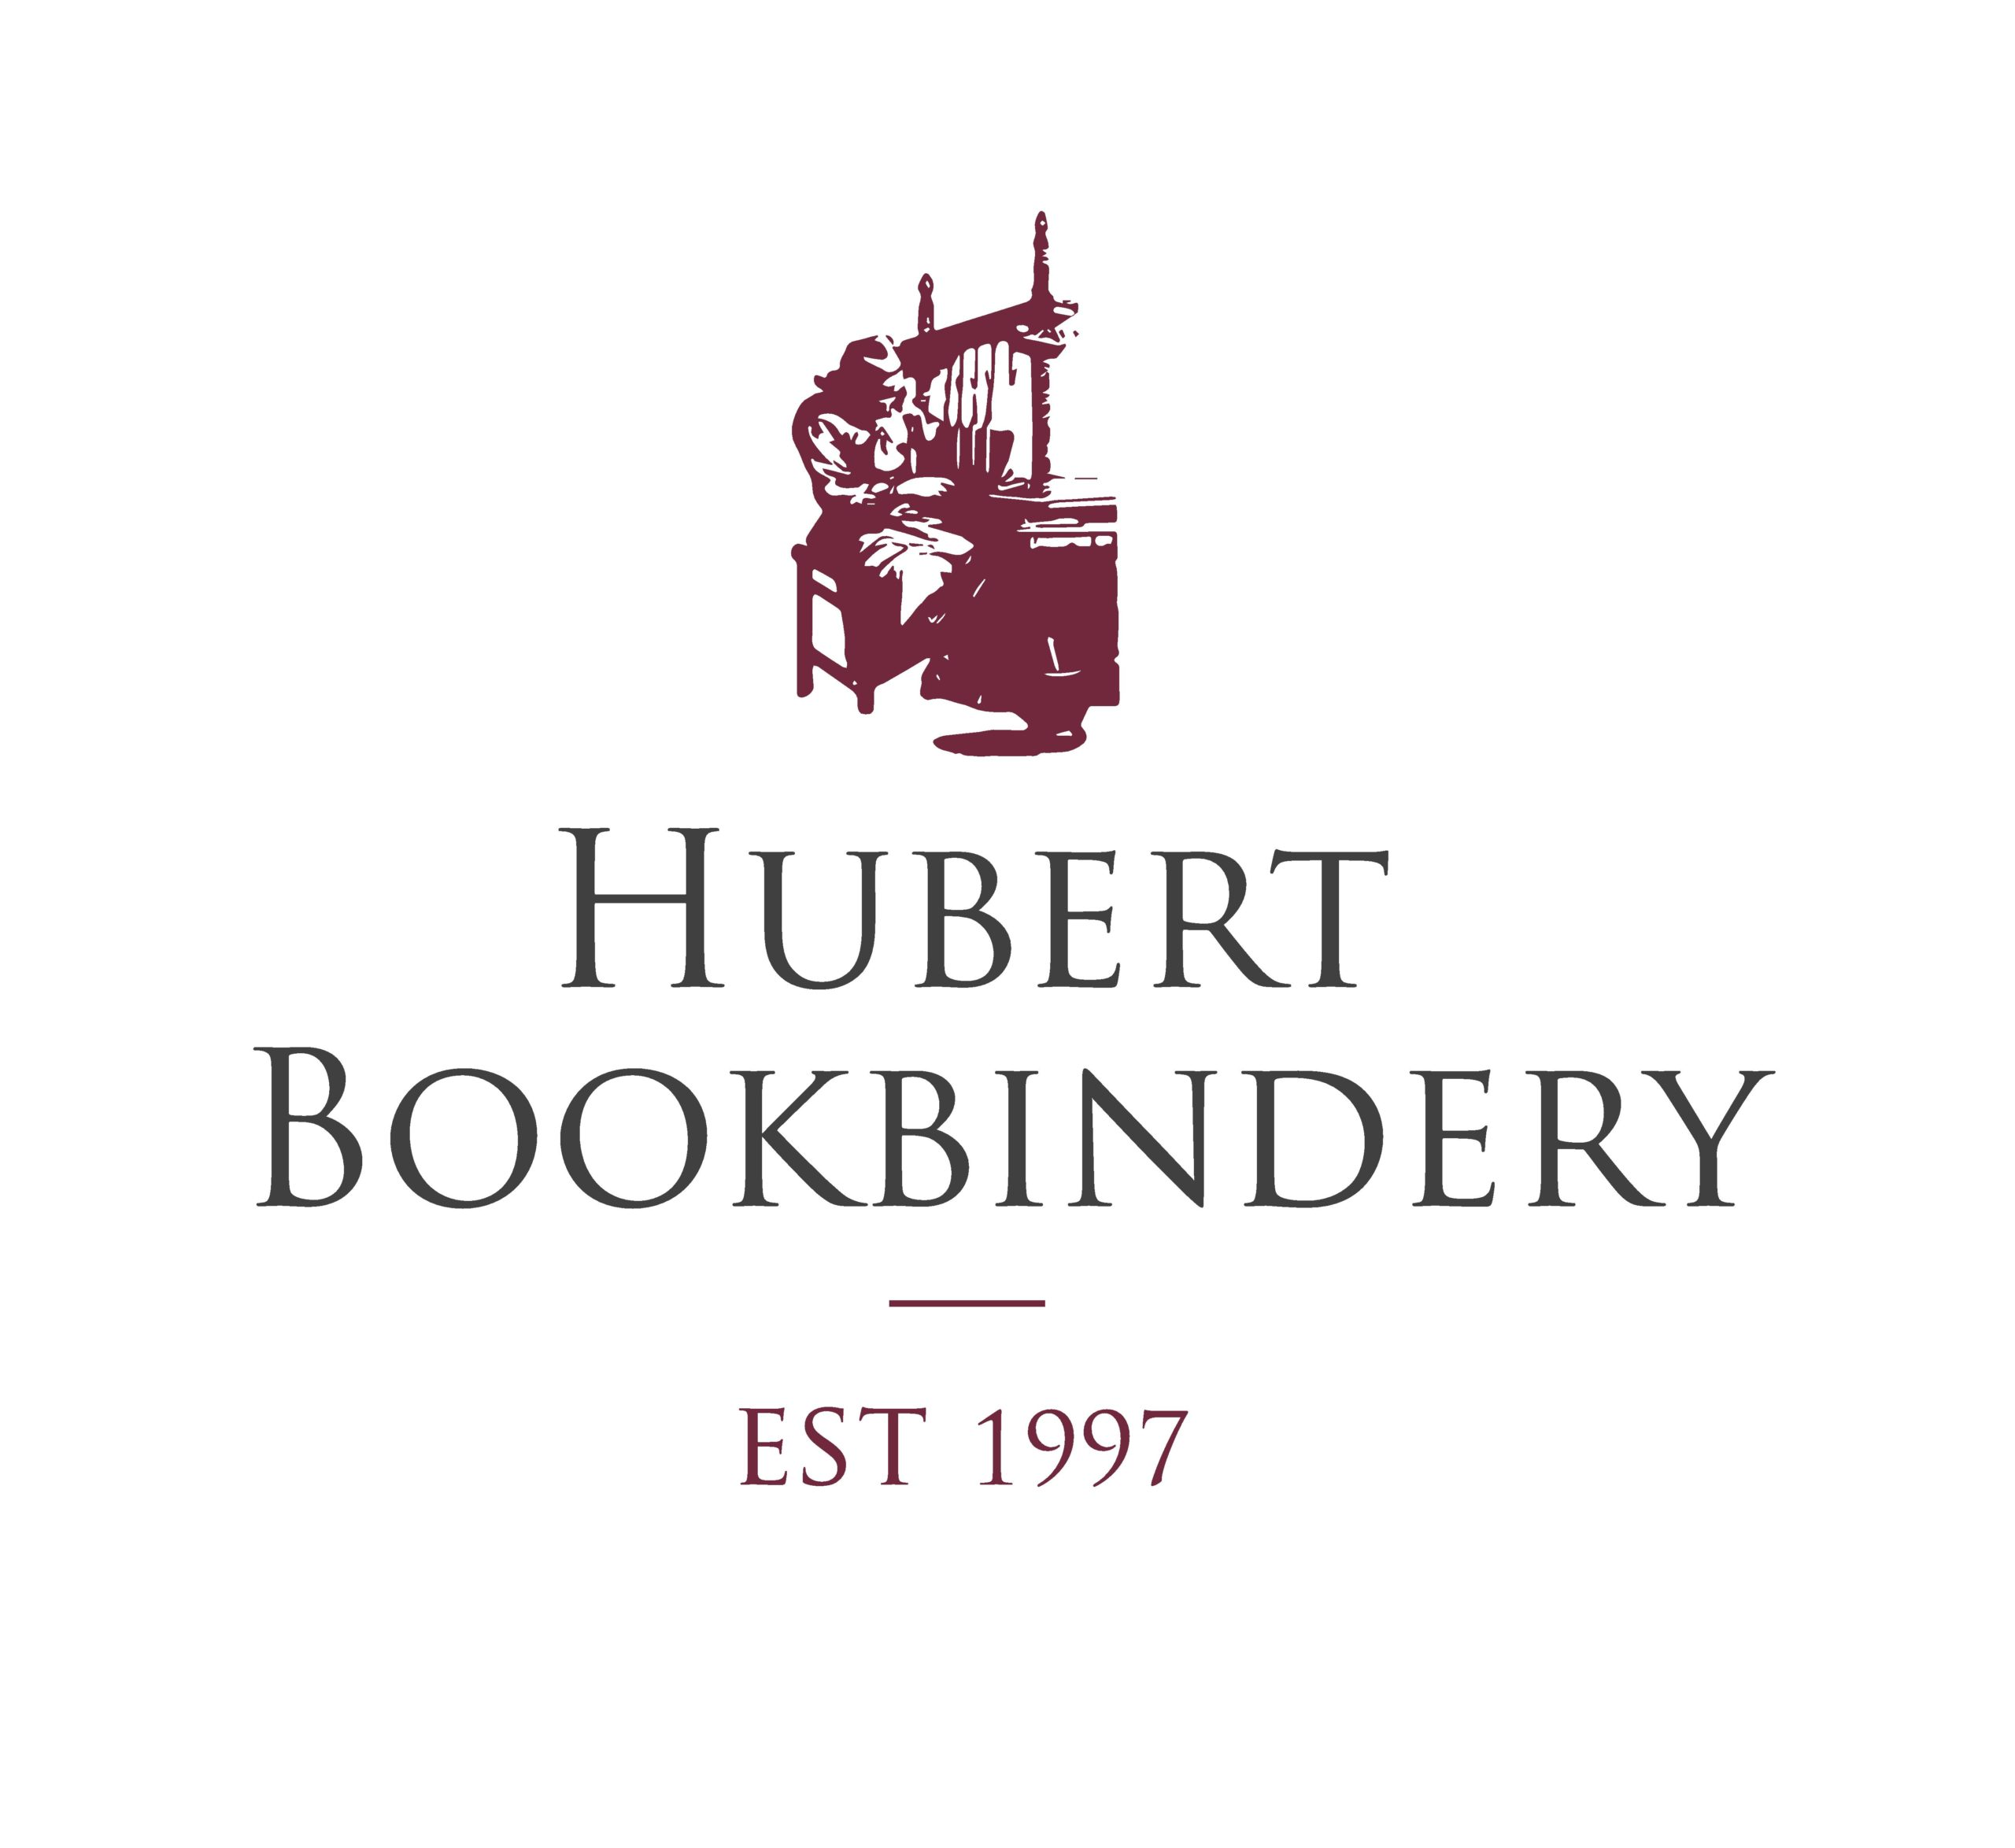 Barbara Hubert Hand Bookbindery